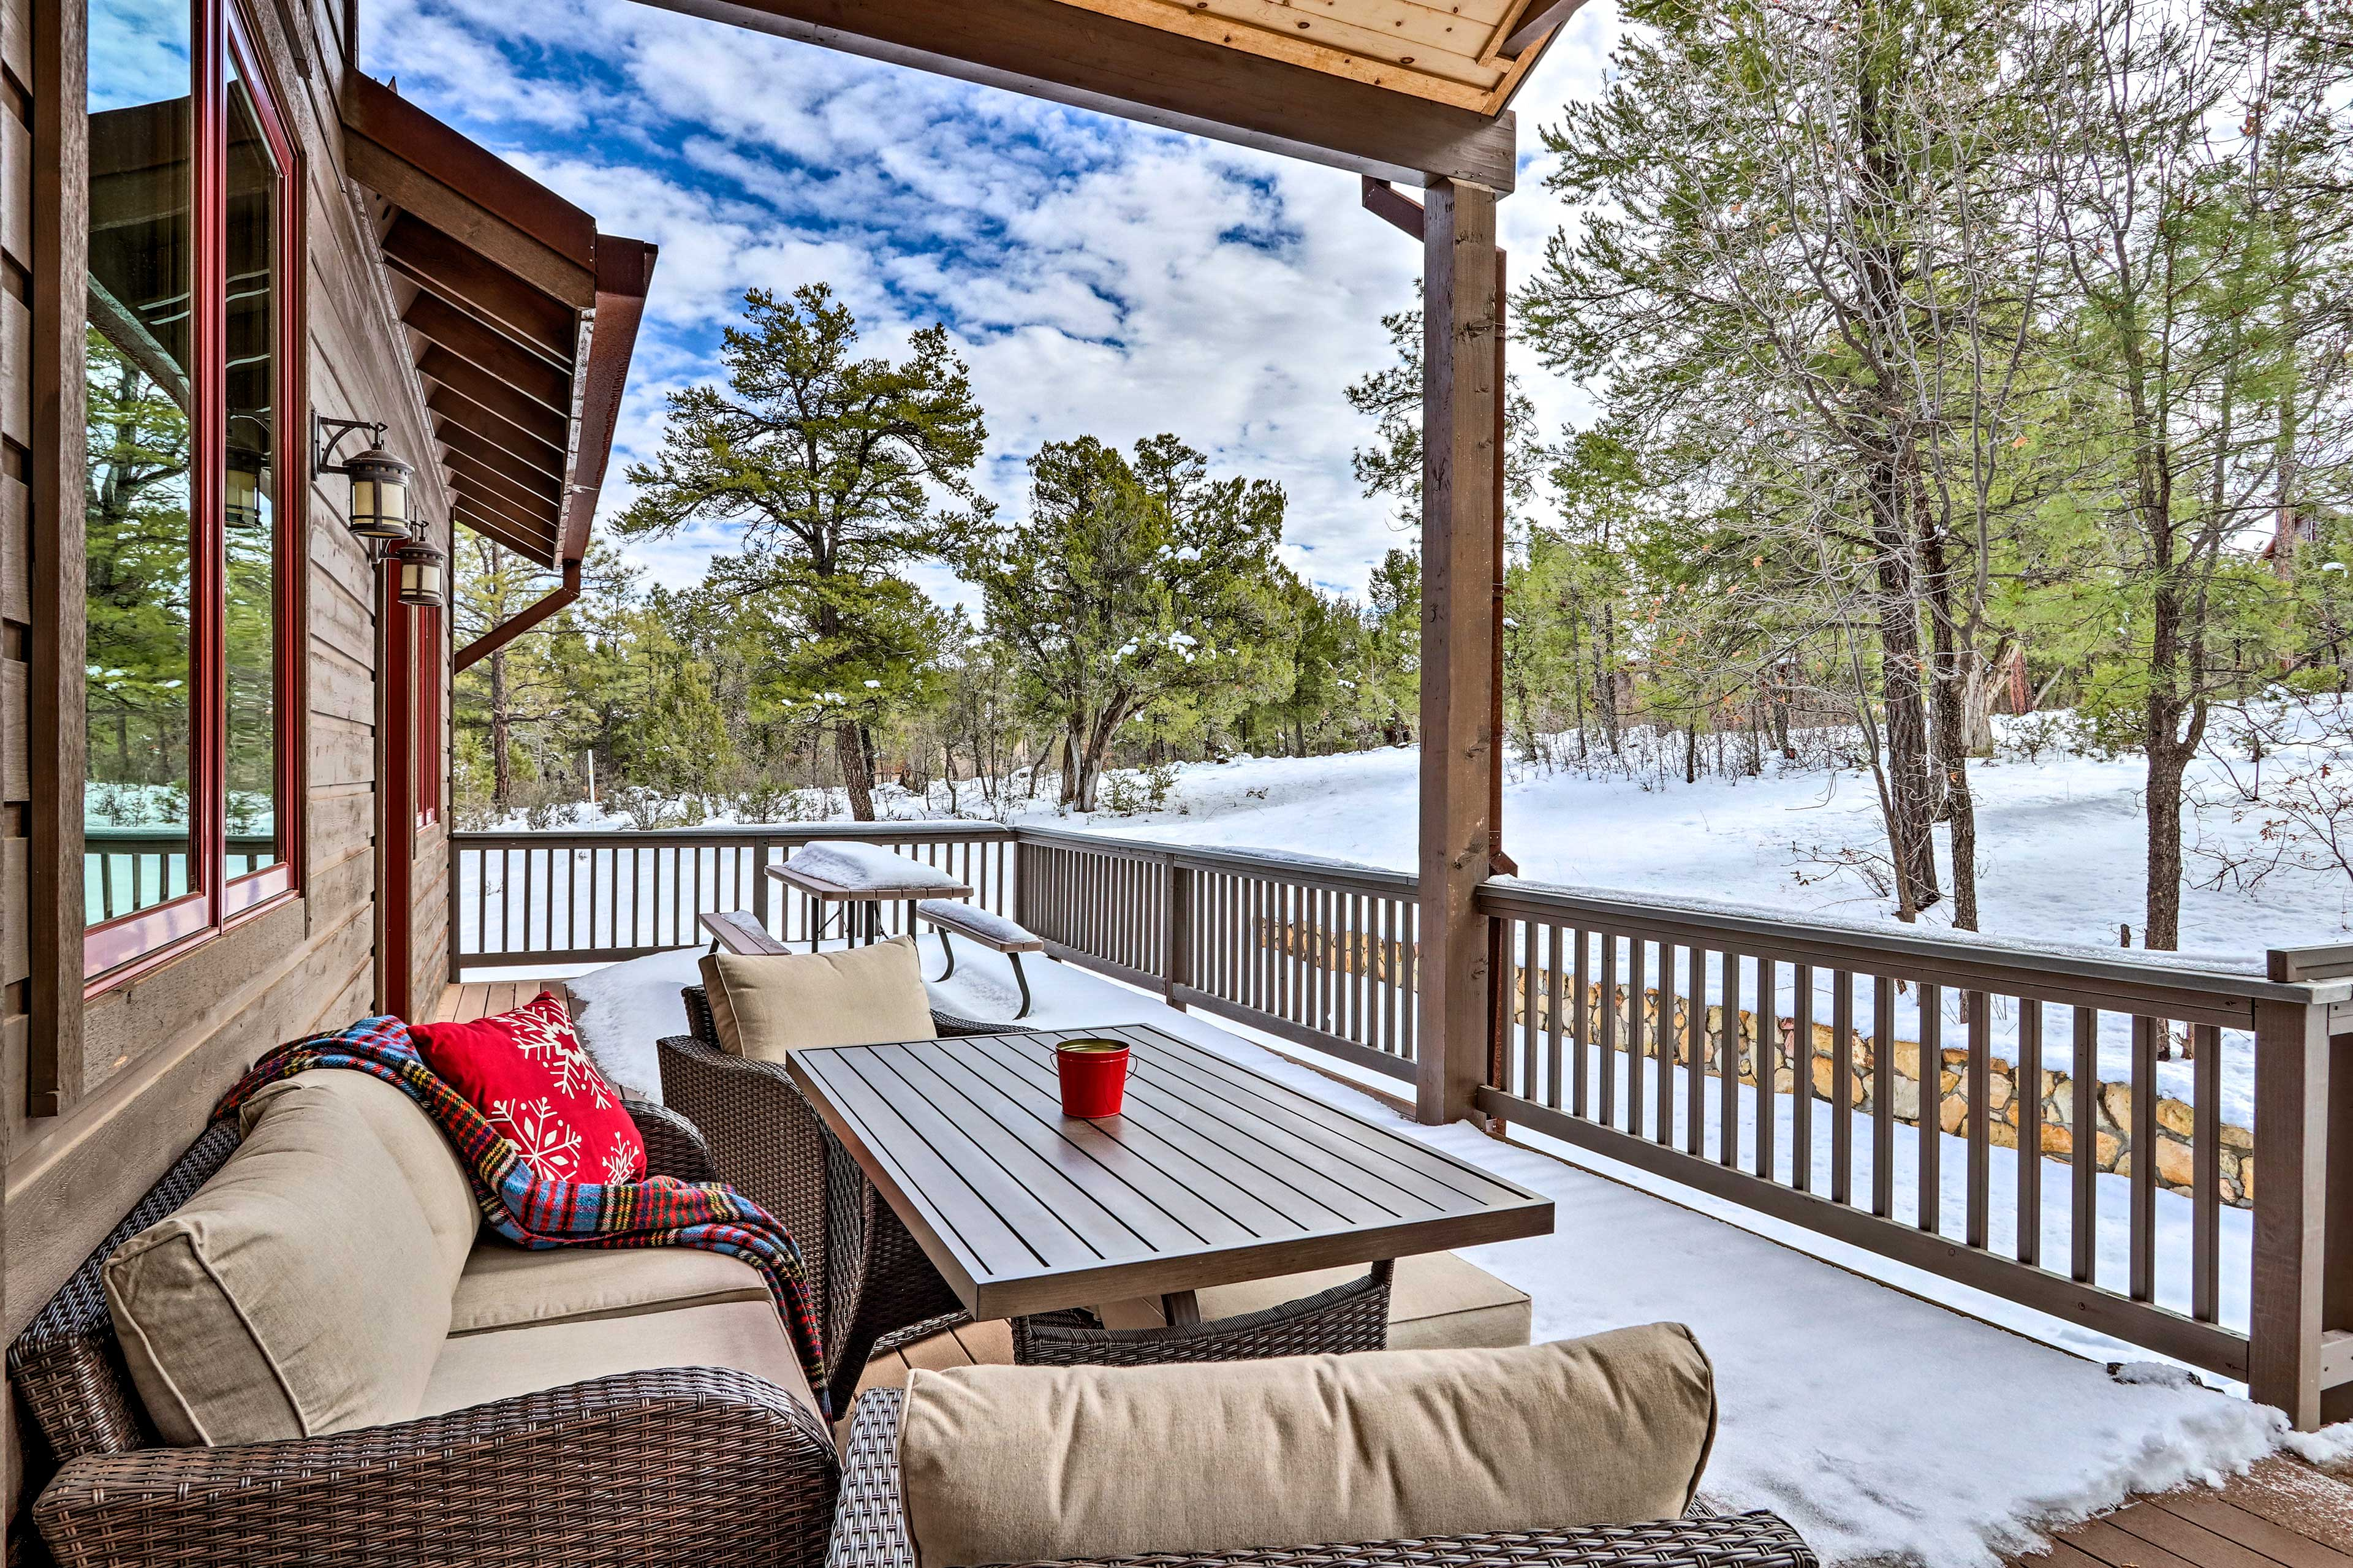 This vacation rental home features peaceful forest views.